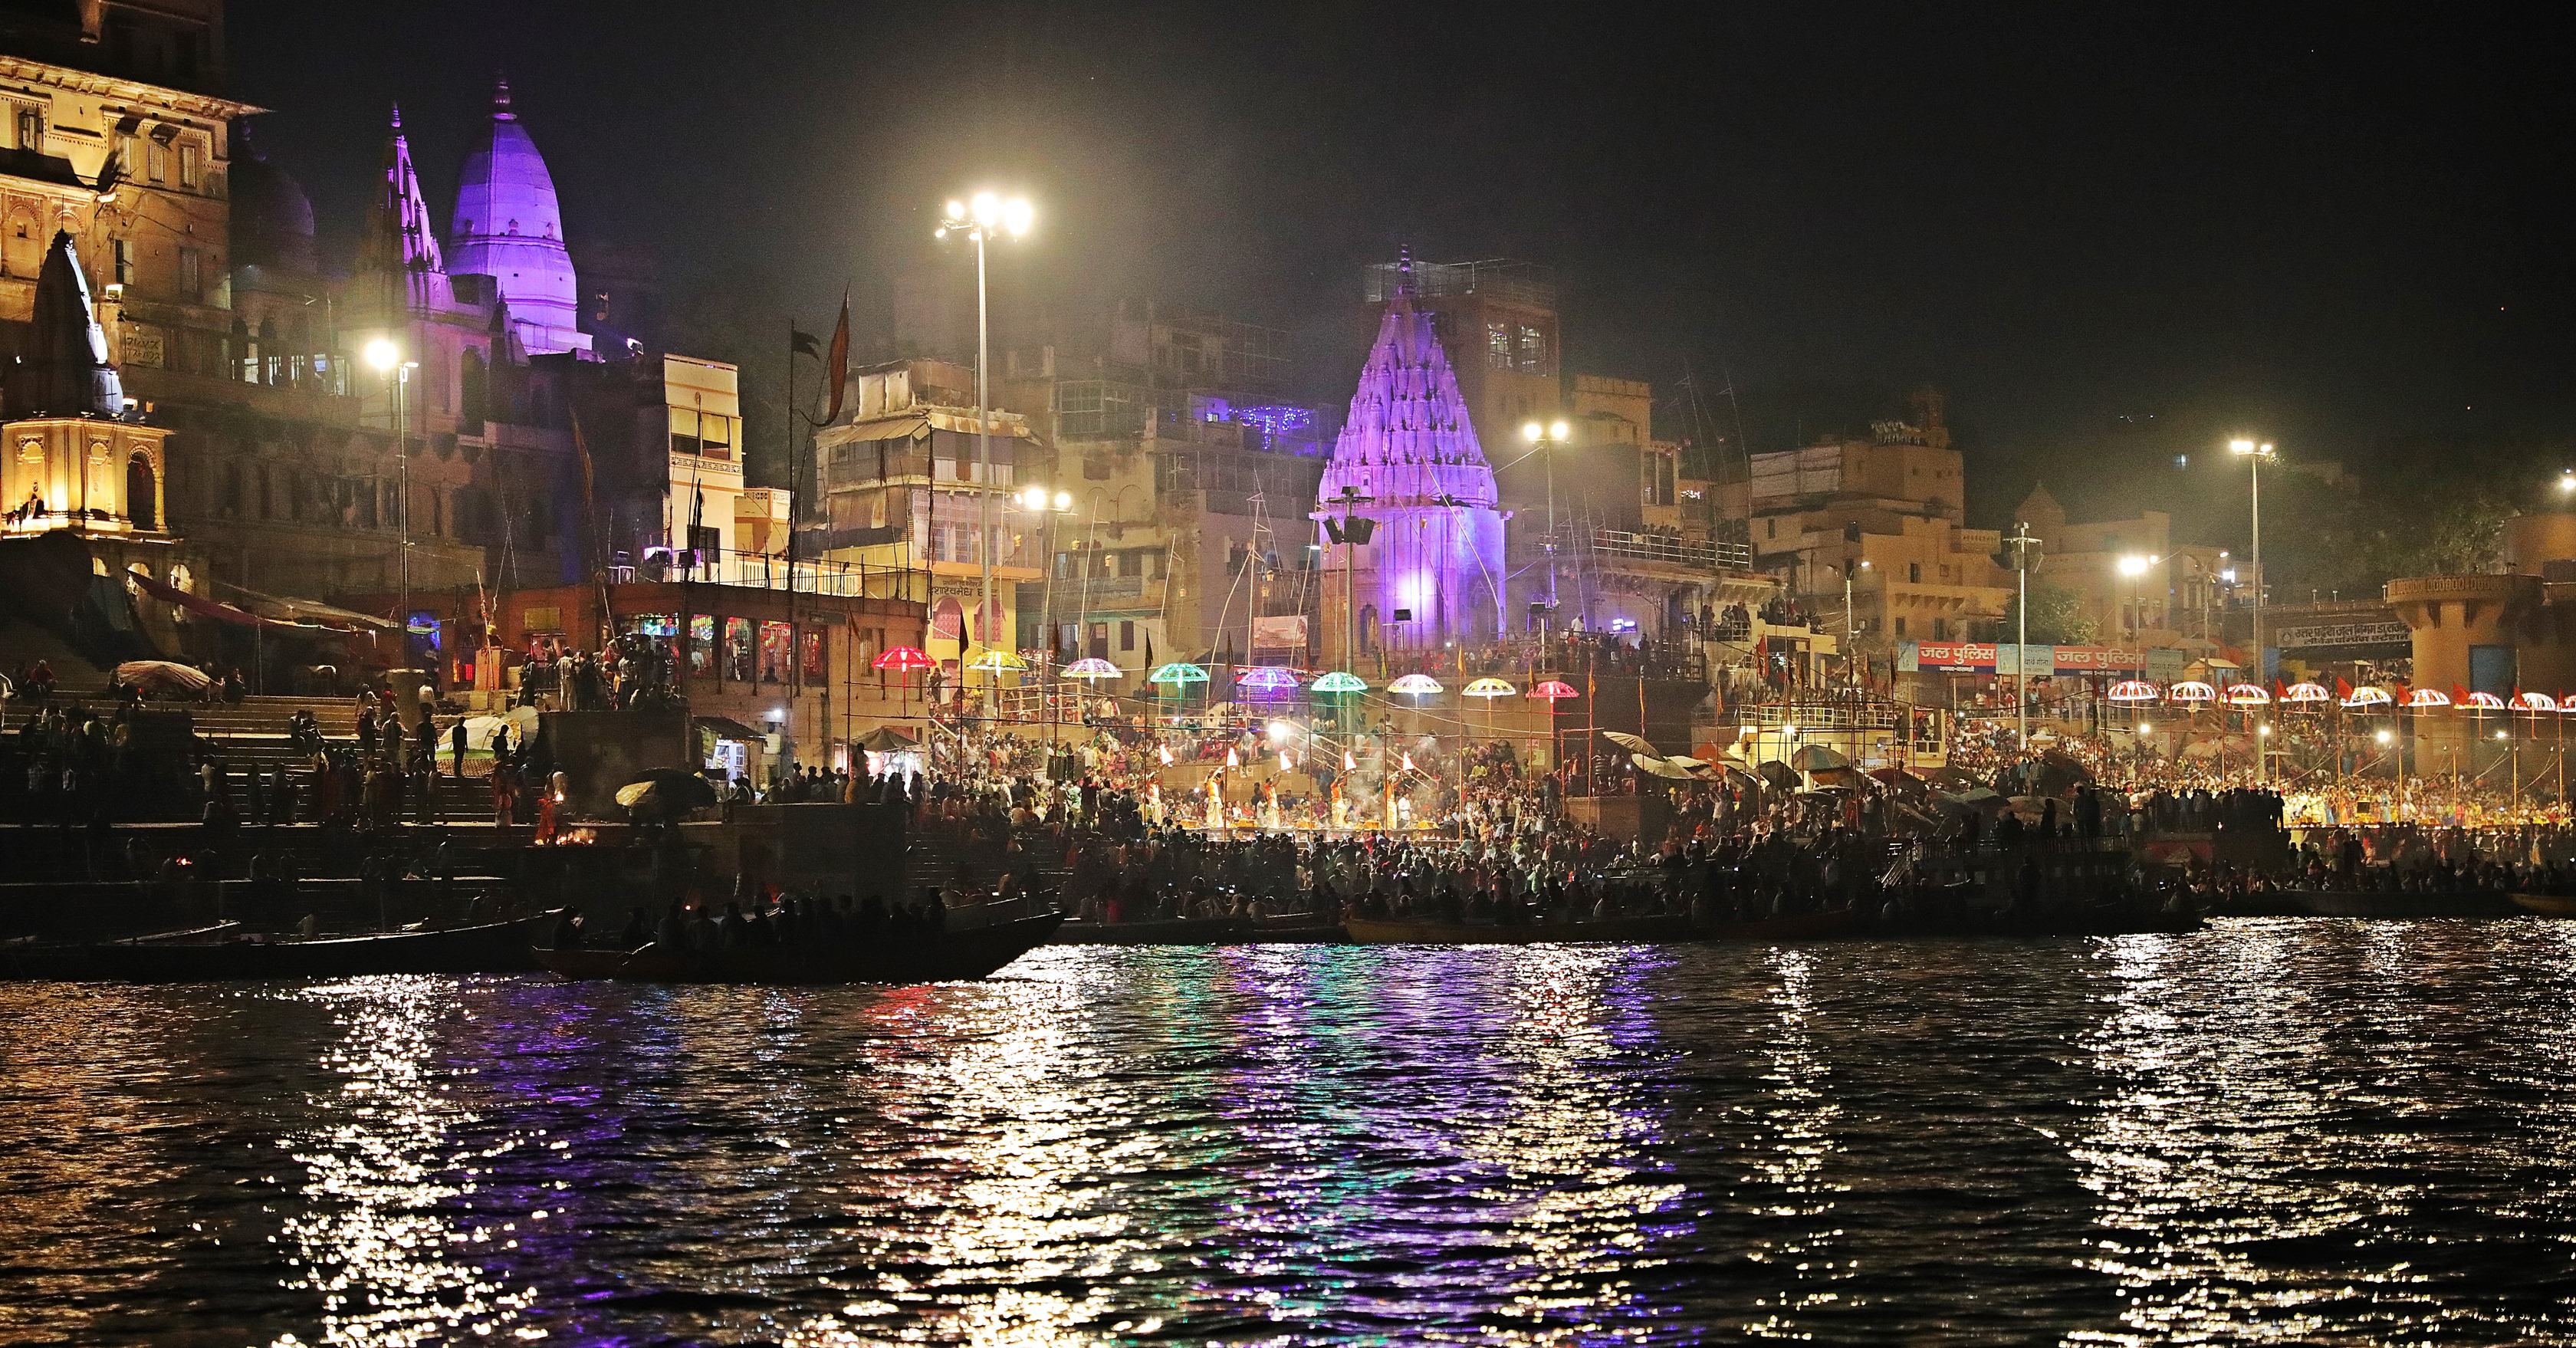 Spectators on boats watching Ganga Aarti in Varanasi